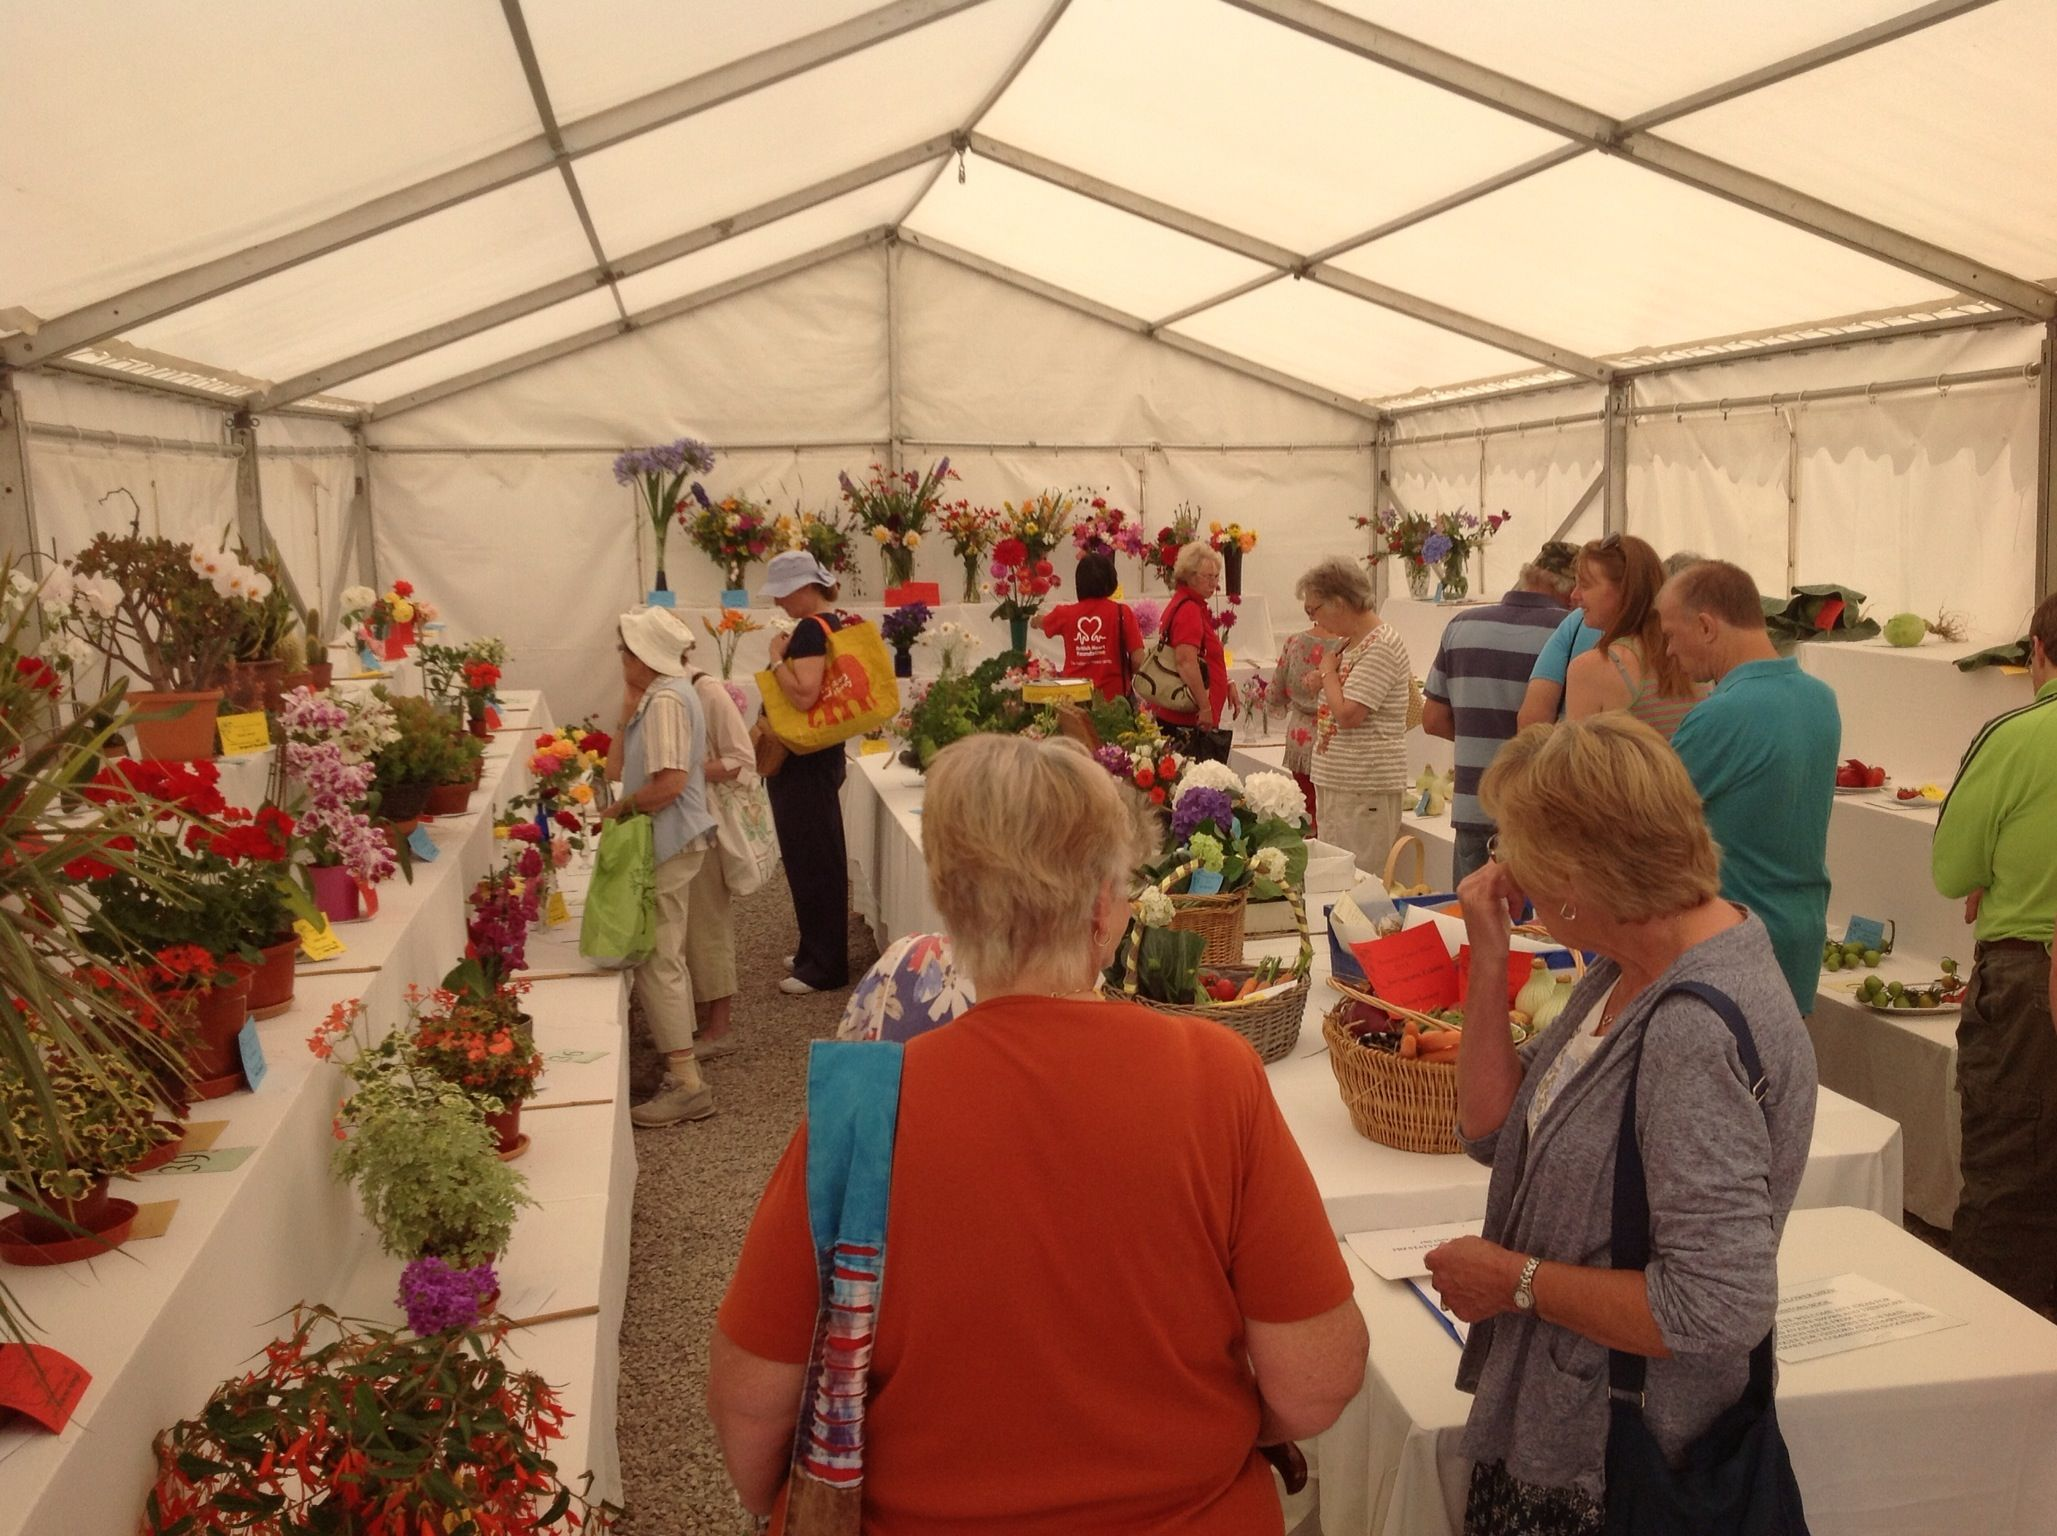 Exhibit Tent At Prestatyns Annual Flower Show Held In The